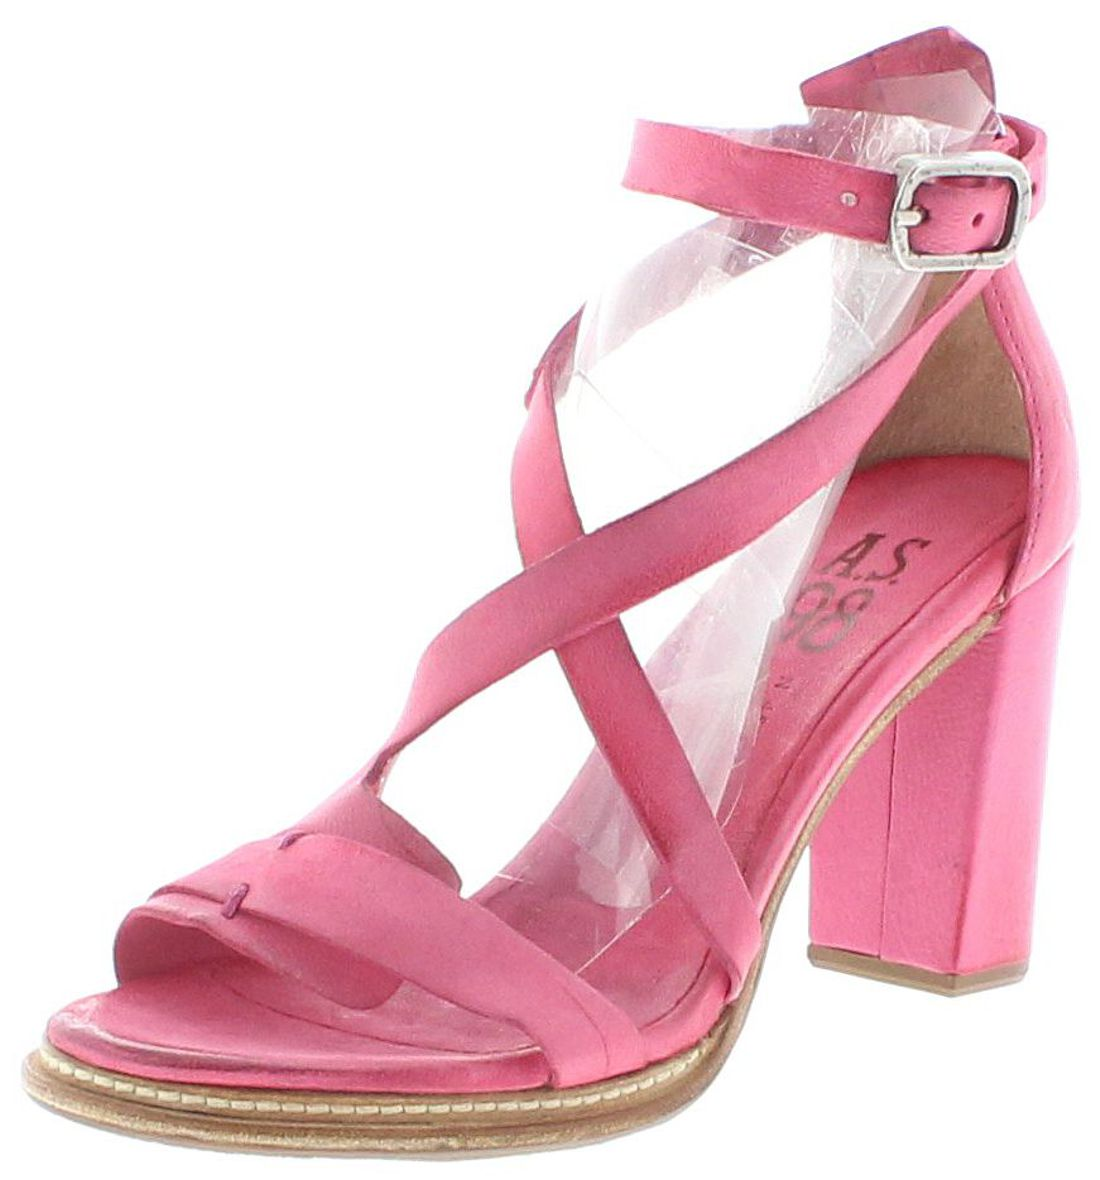 A.S.98 589004 Shock Ladies Fashion Sandal - pink